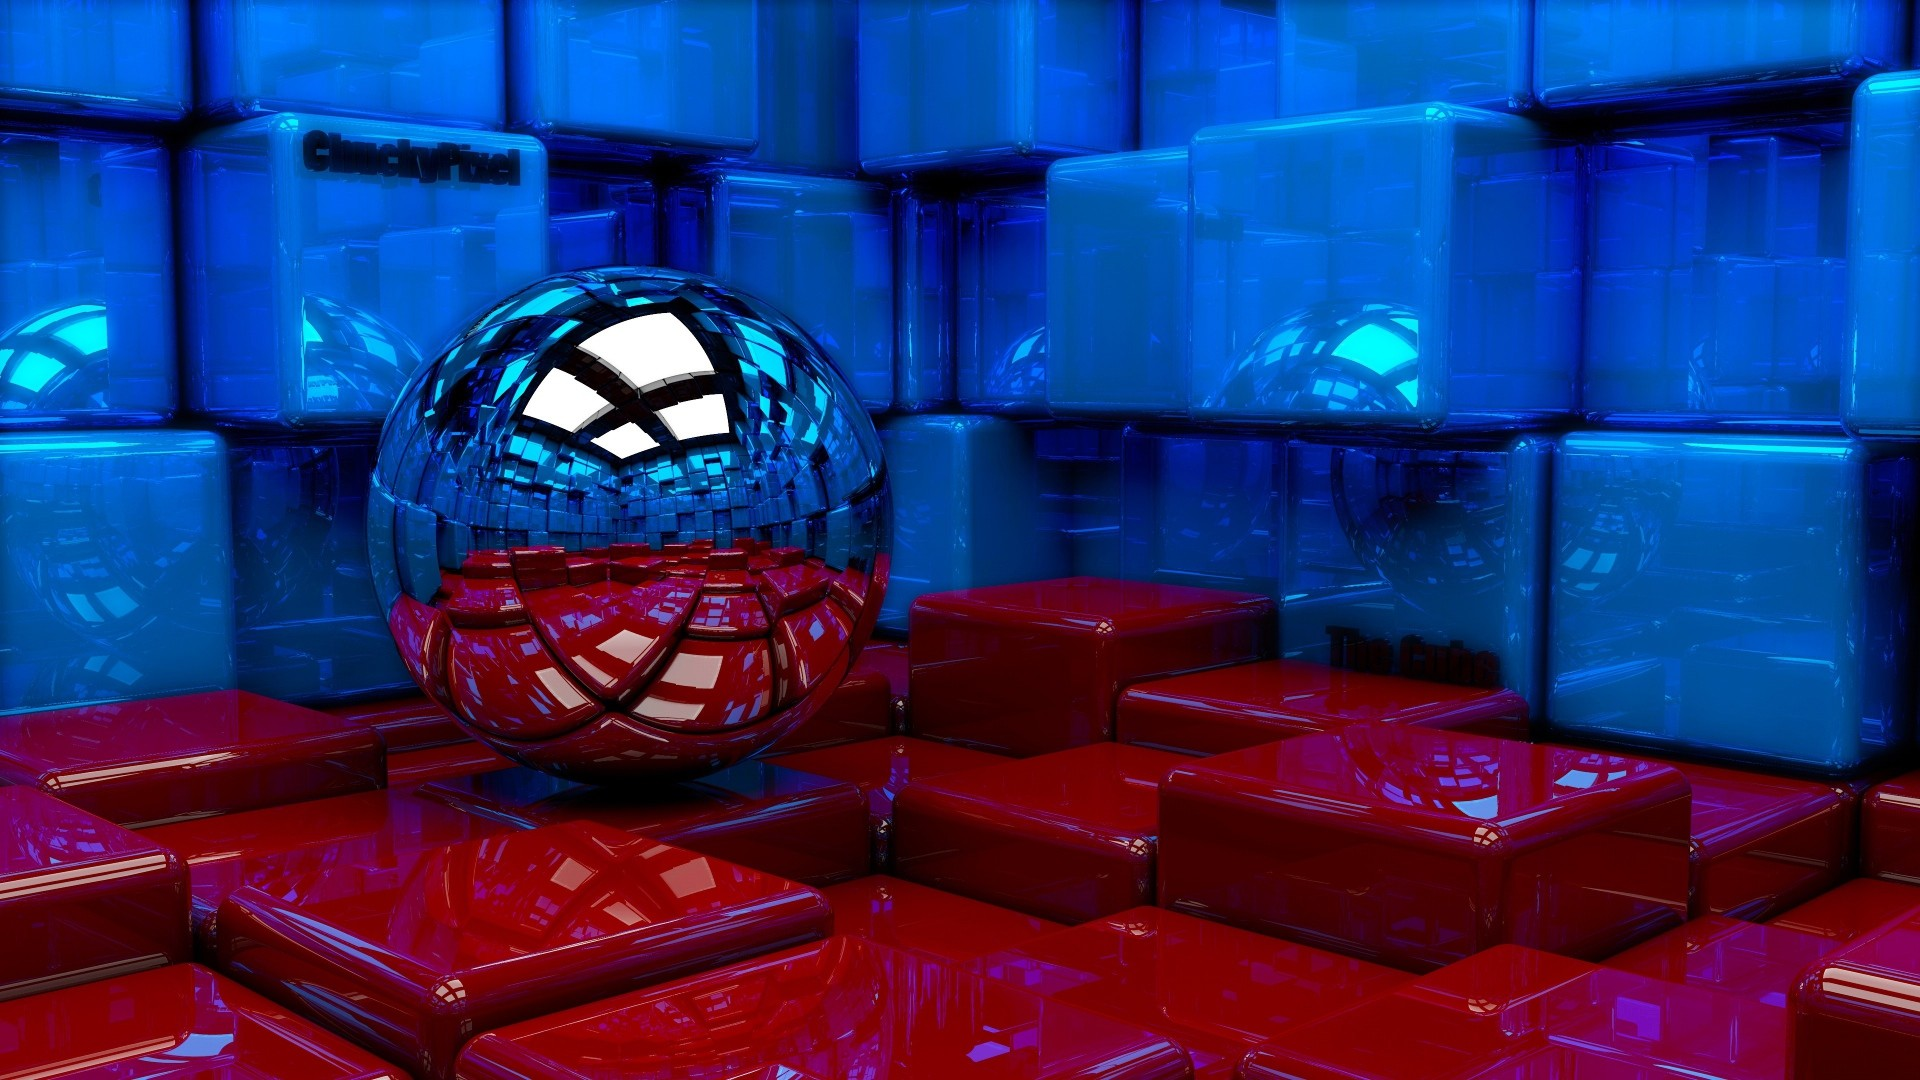 Preview wallpaper ball, cubes, metal, blue, red, reflection 1920×1080